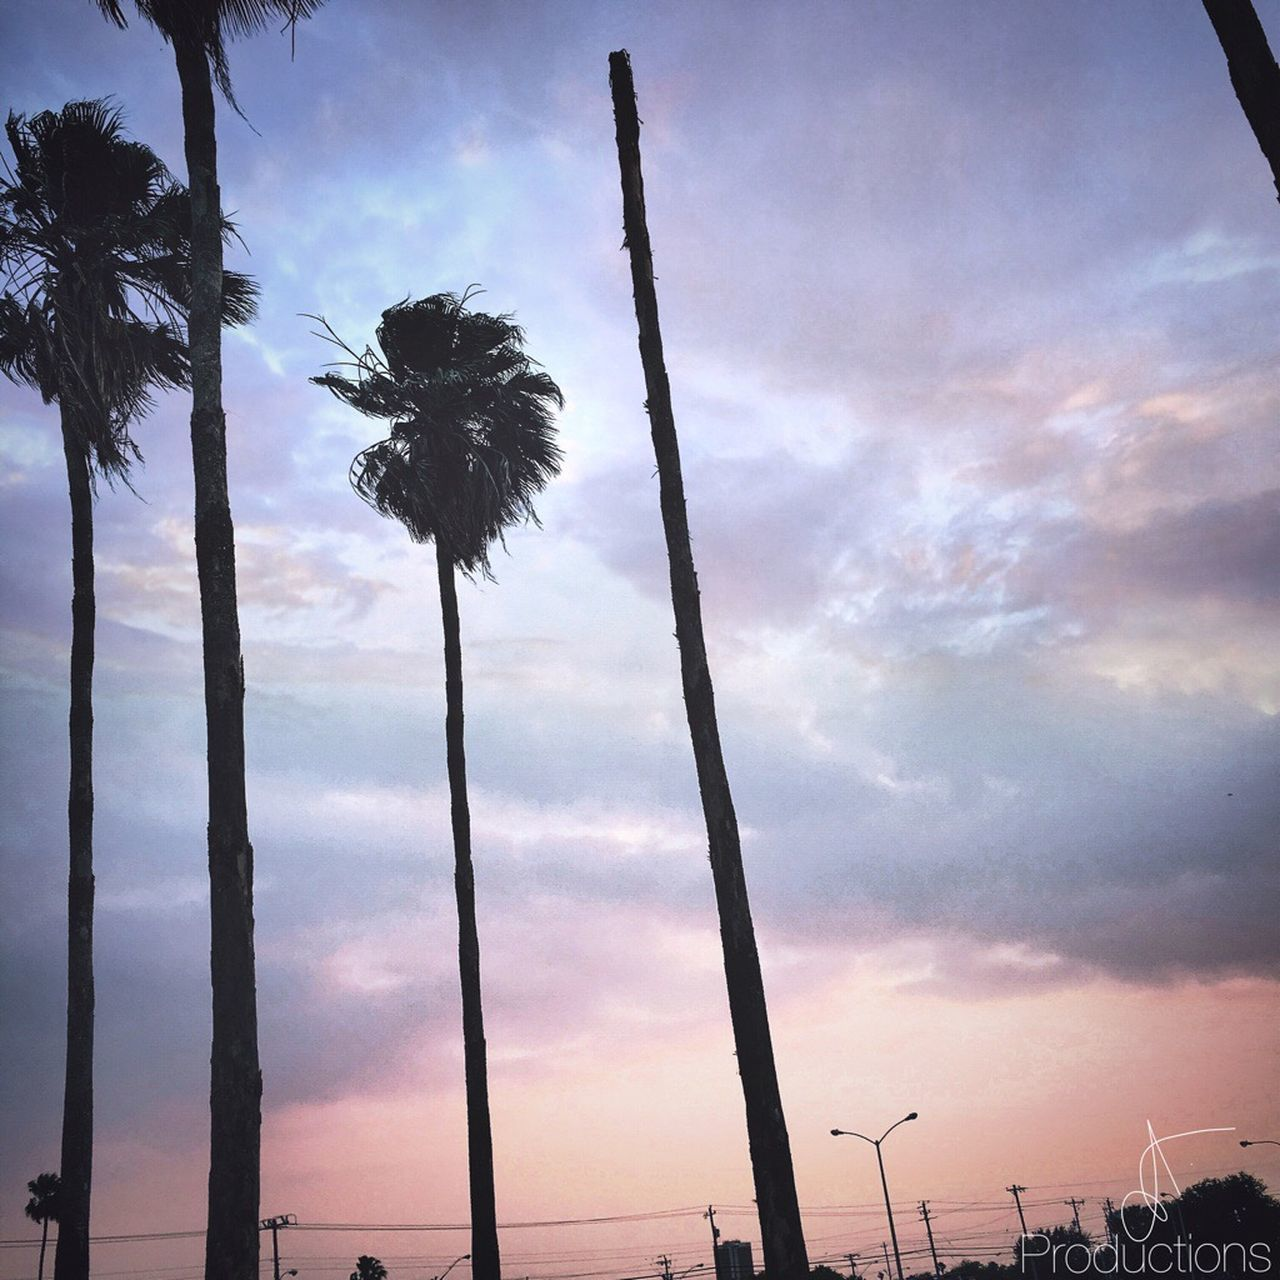 sky, nature, beauty in nature, cloud - sky, growth, palm tree, low angle view, outdoors, flower, no people, tranquility, tree, tree trunk, sunset, scenics, day